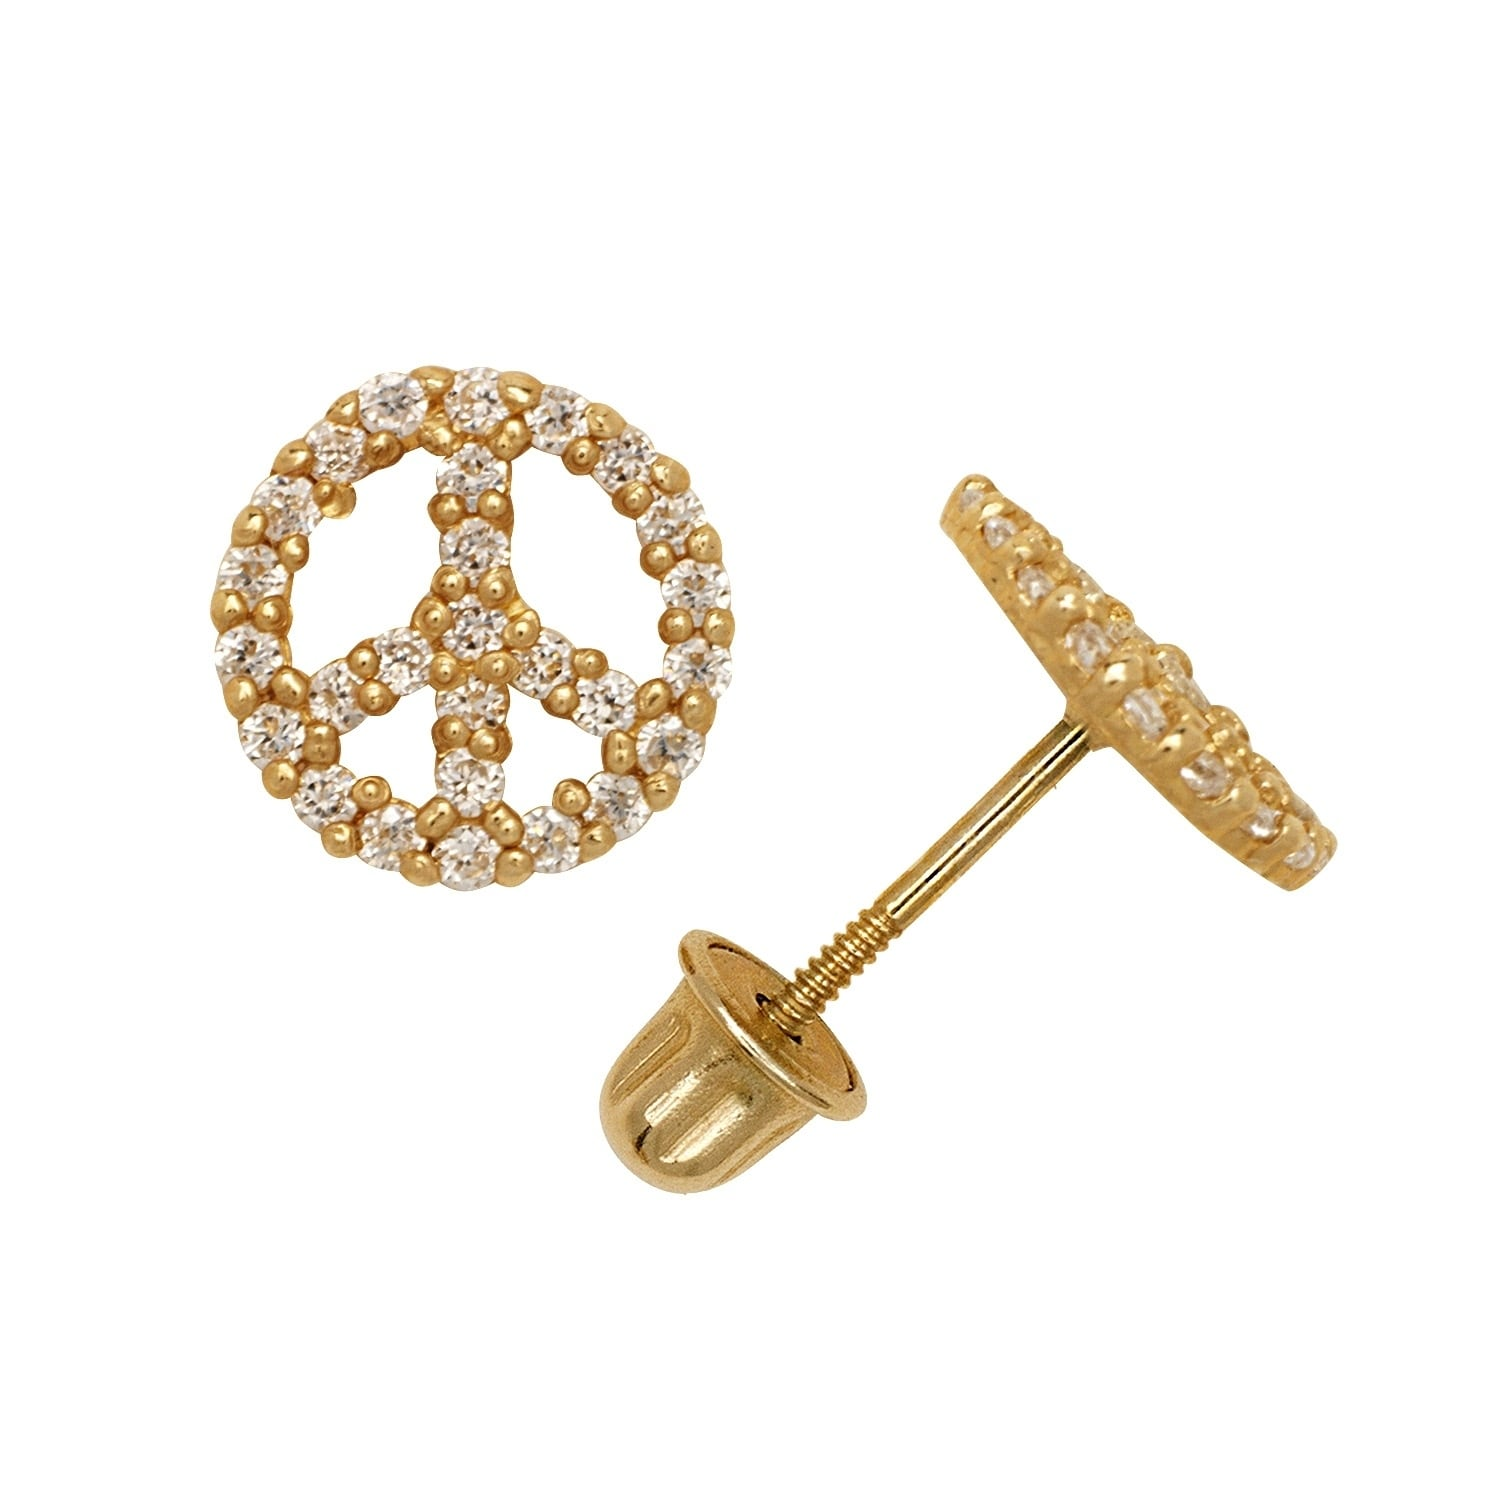 Jewel Tie Solid 14K Yellow Gold Cubic Zirconia CZ Dolphin Stud Earrings With Screw Back